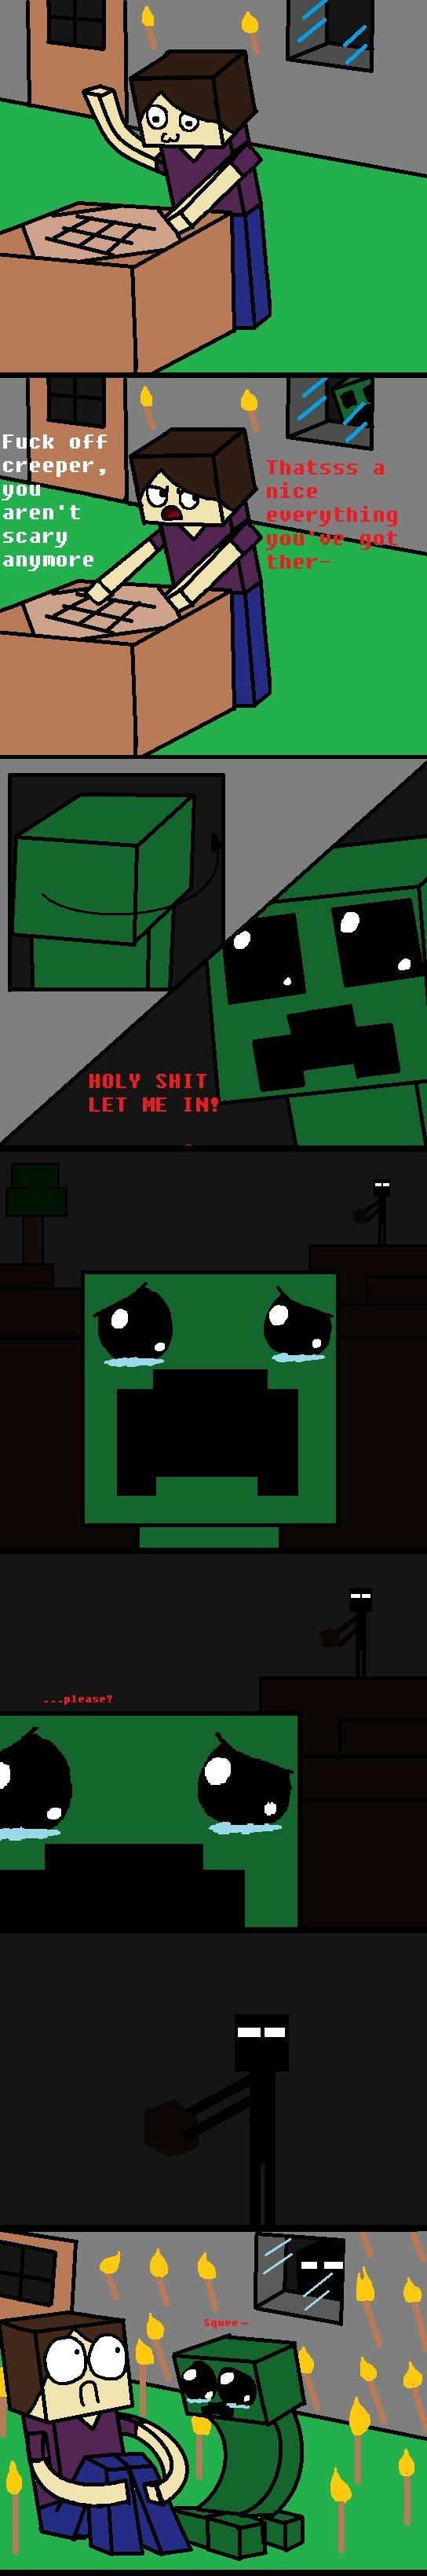 http://img.niceminecraft.net/Funny/Funny-enderman.jpg